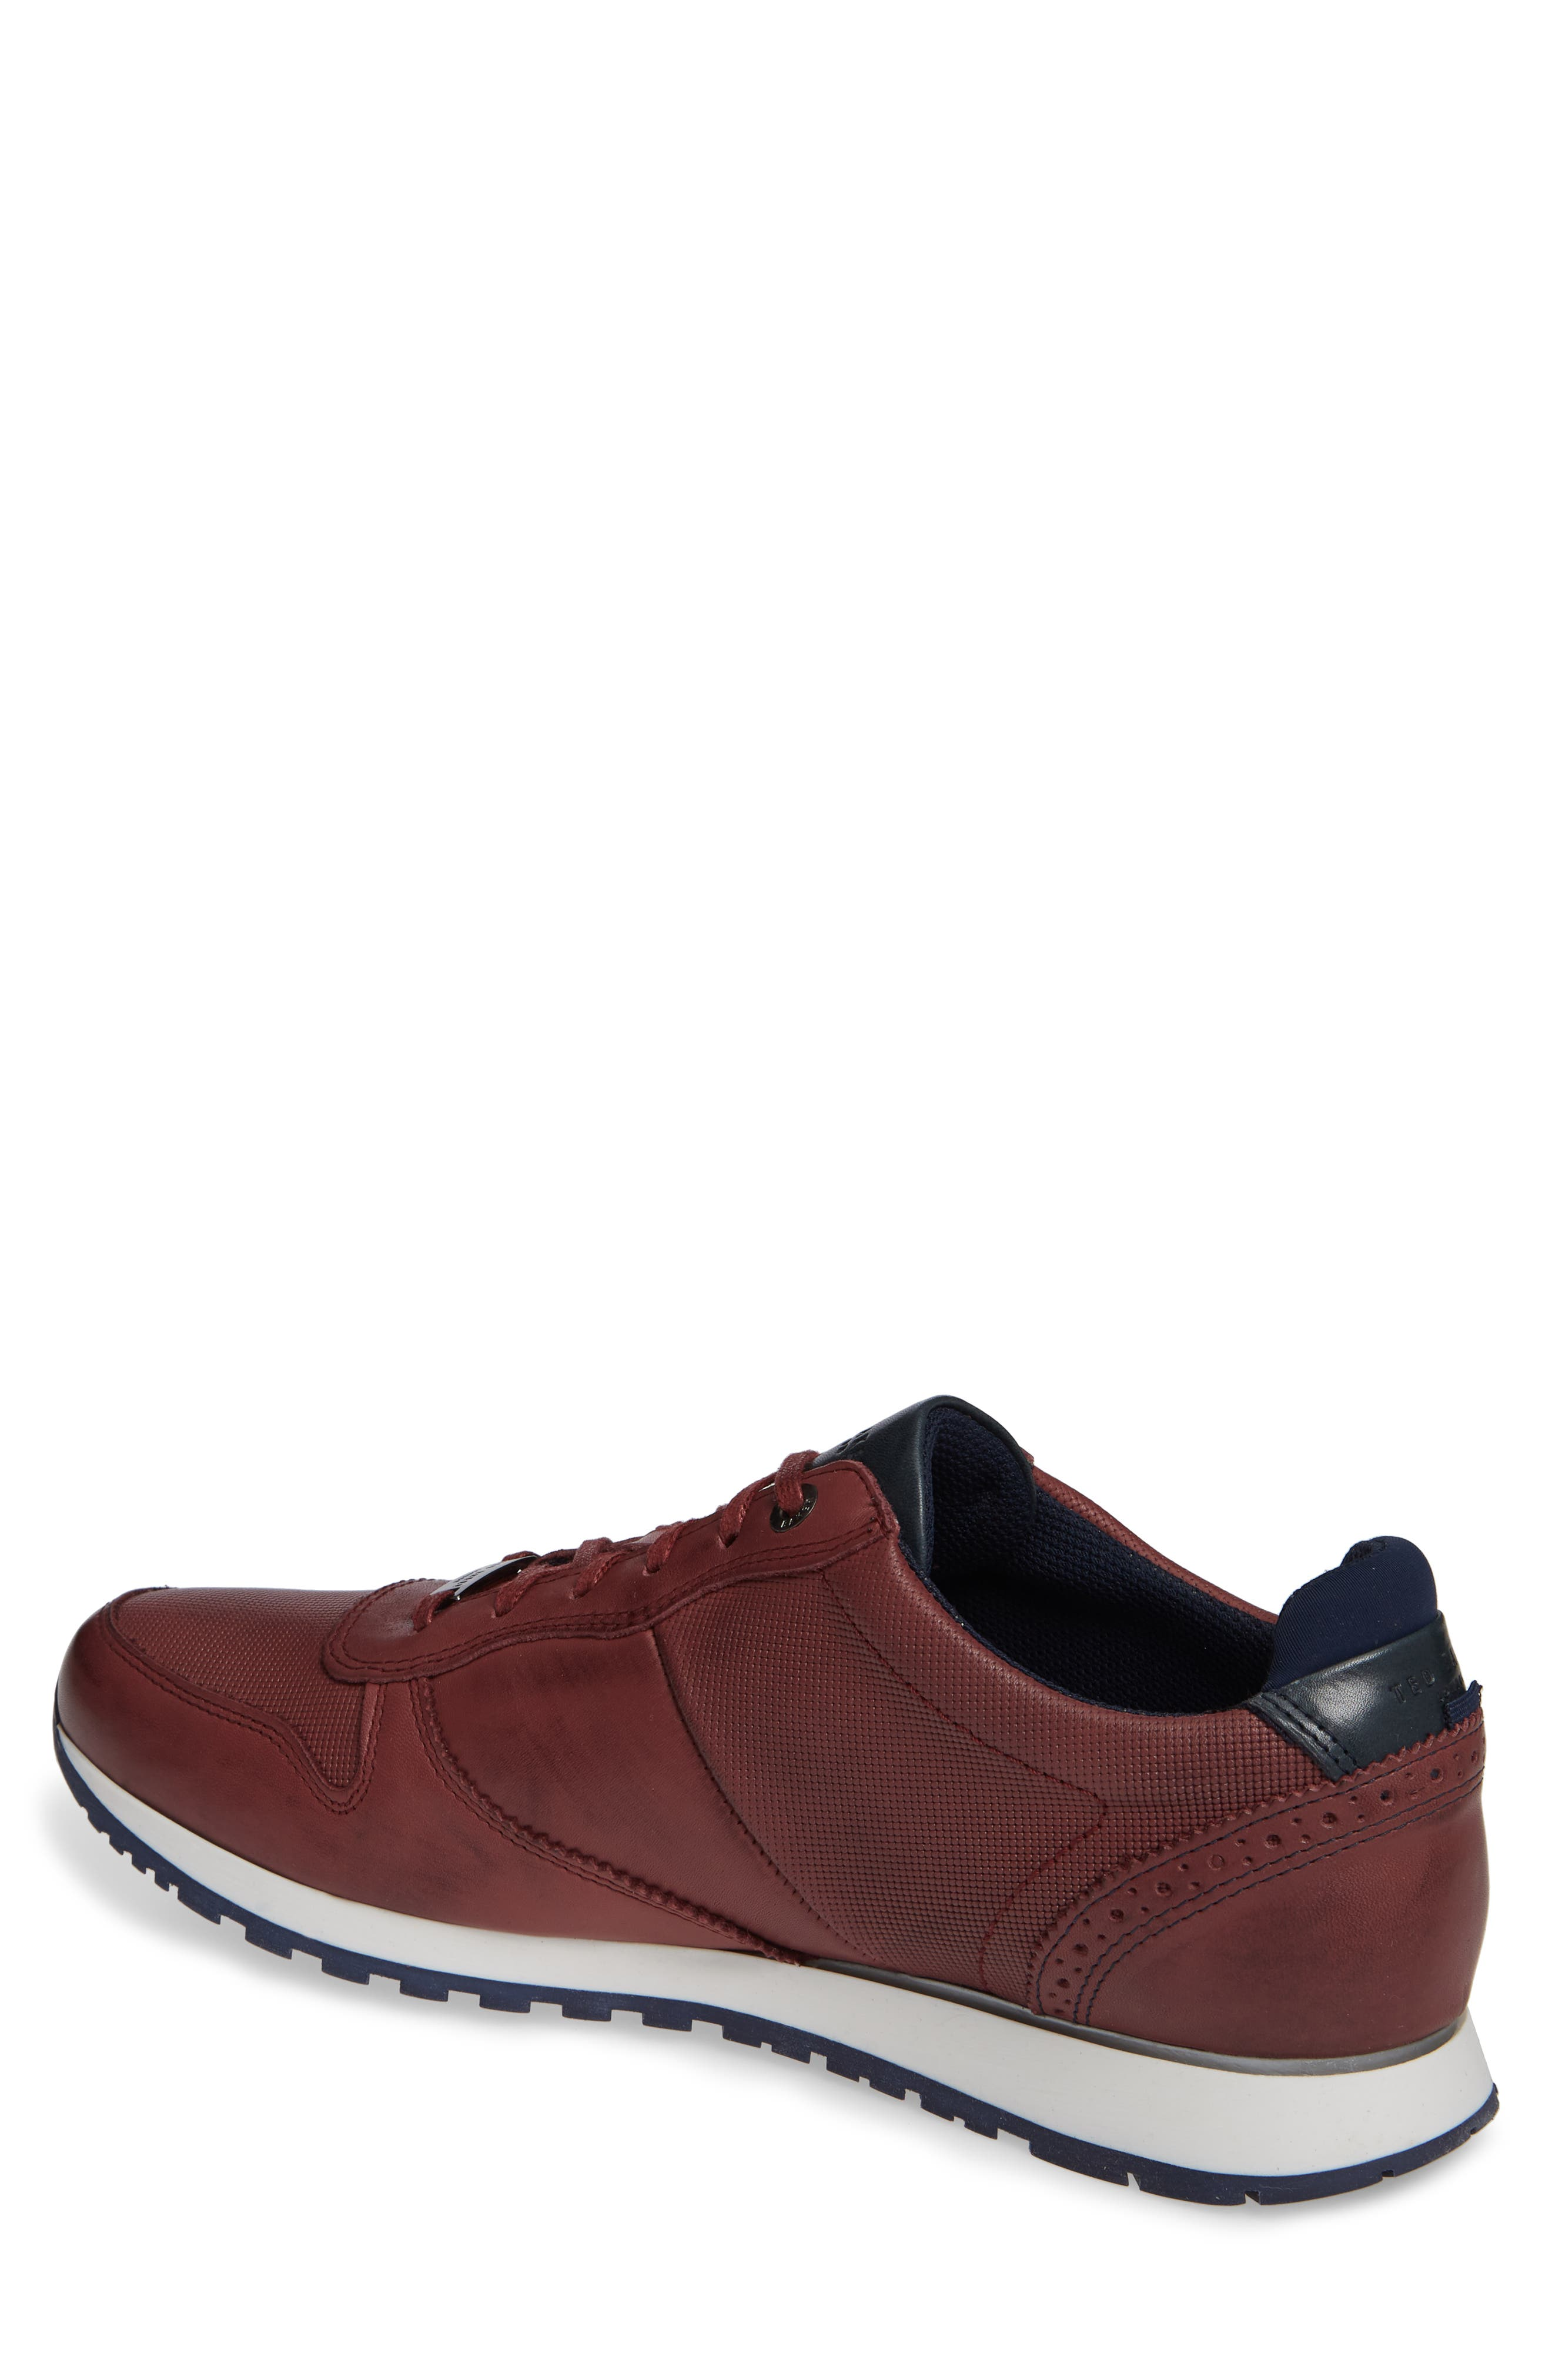 Shindl Sneaker,                             Alternate thumbnail 3, color,                             Dark Red Leather